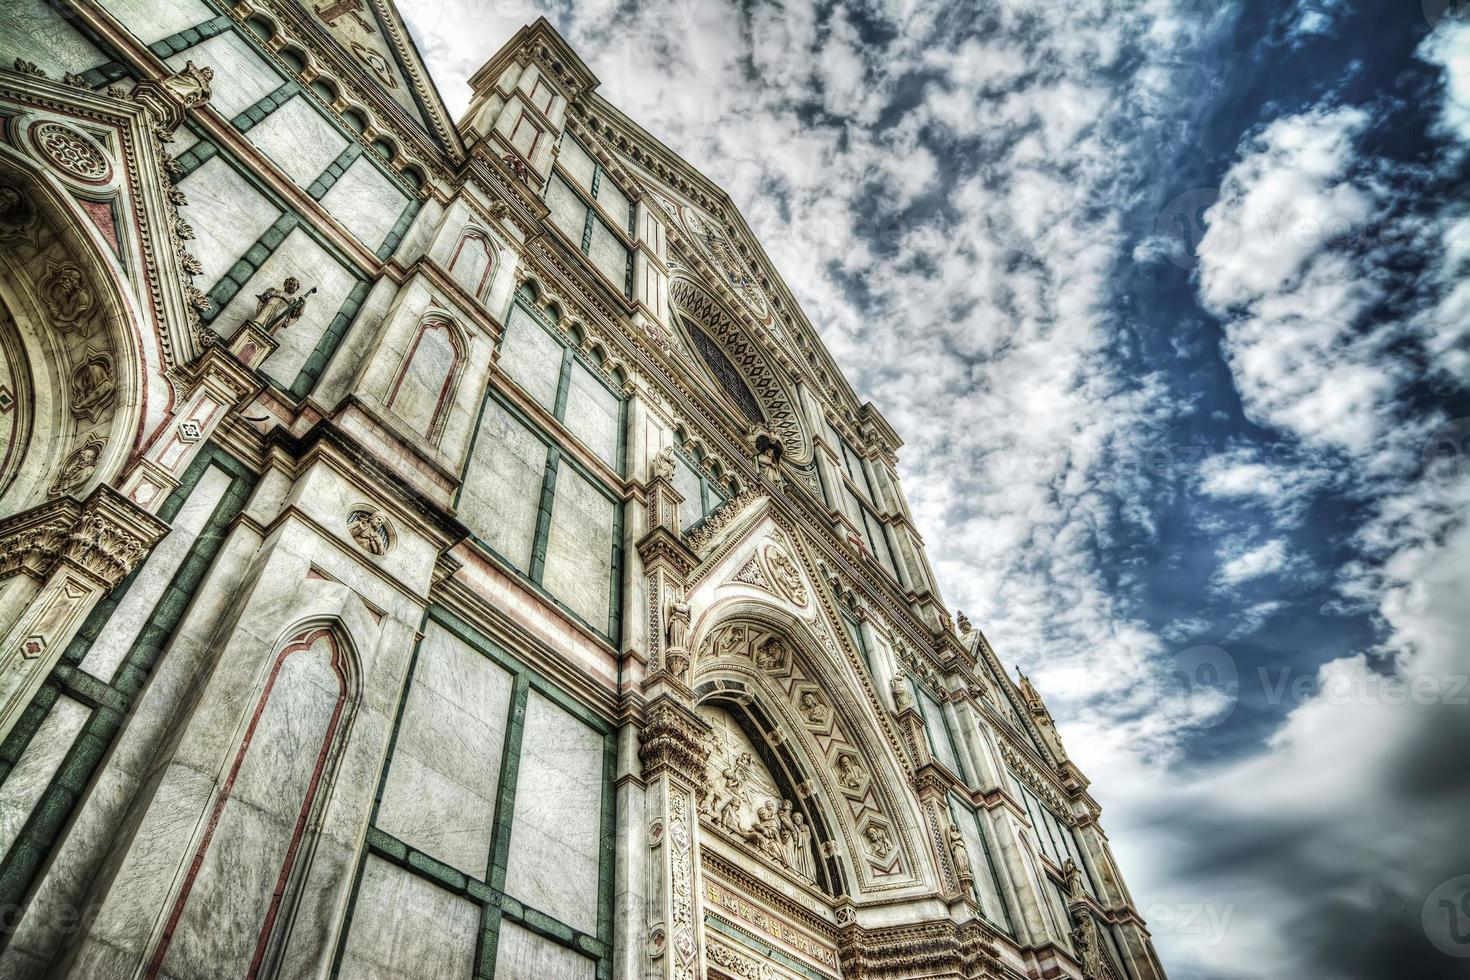 Santa Croce cathedral in hdr tone mapping effect photo